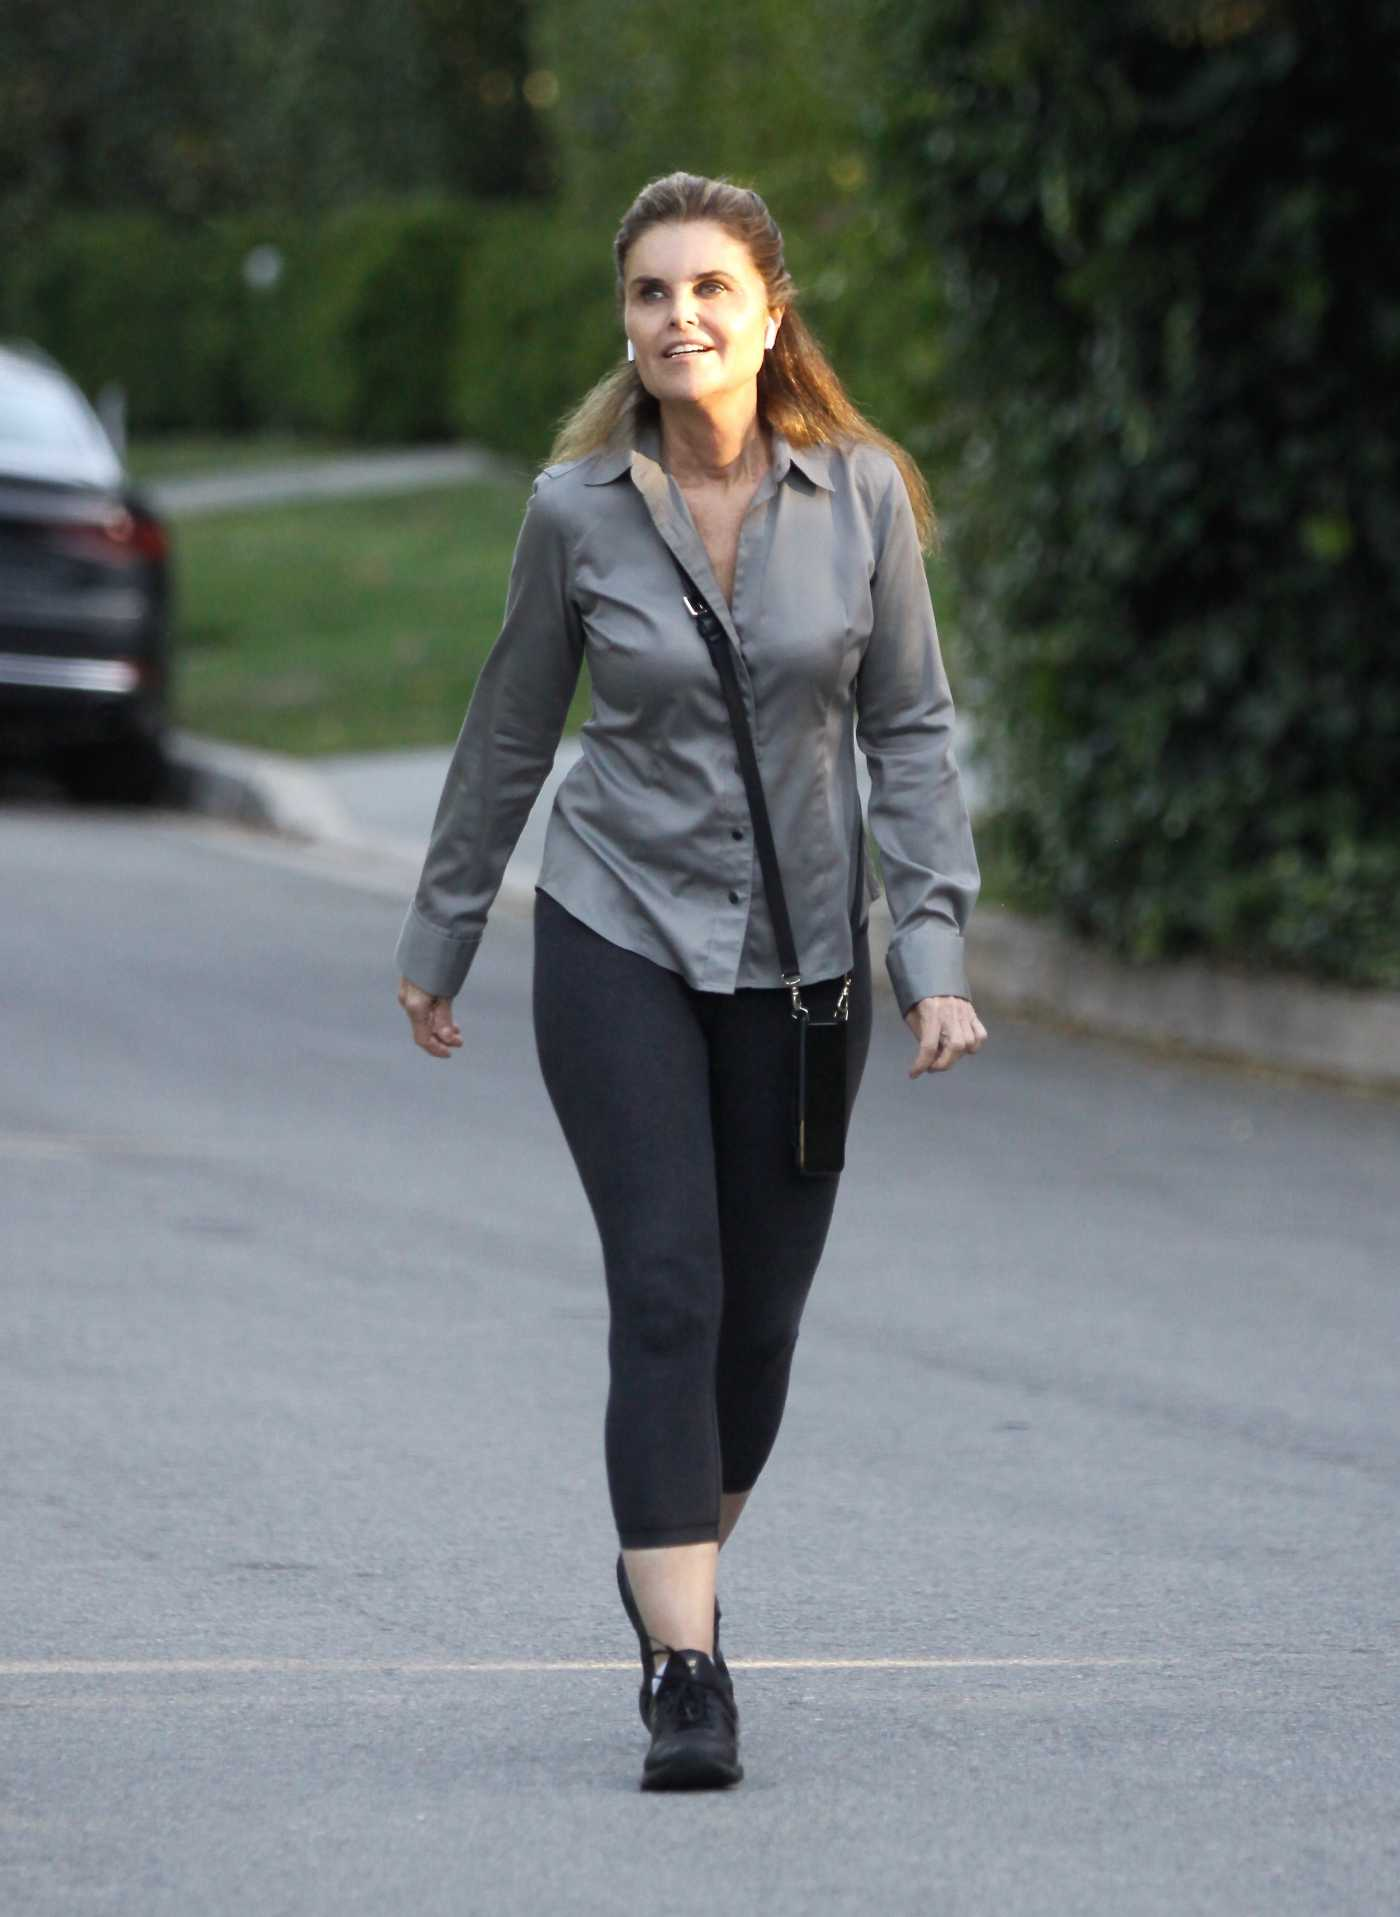 Maria Shriver in a Gray Shirt Was Seen Out in Brentwood 06/04/2020